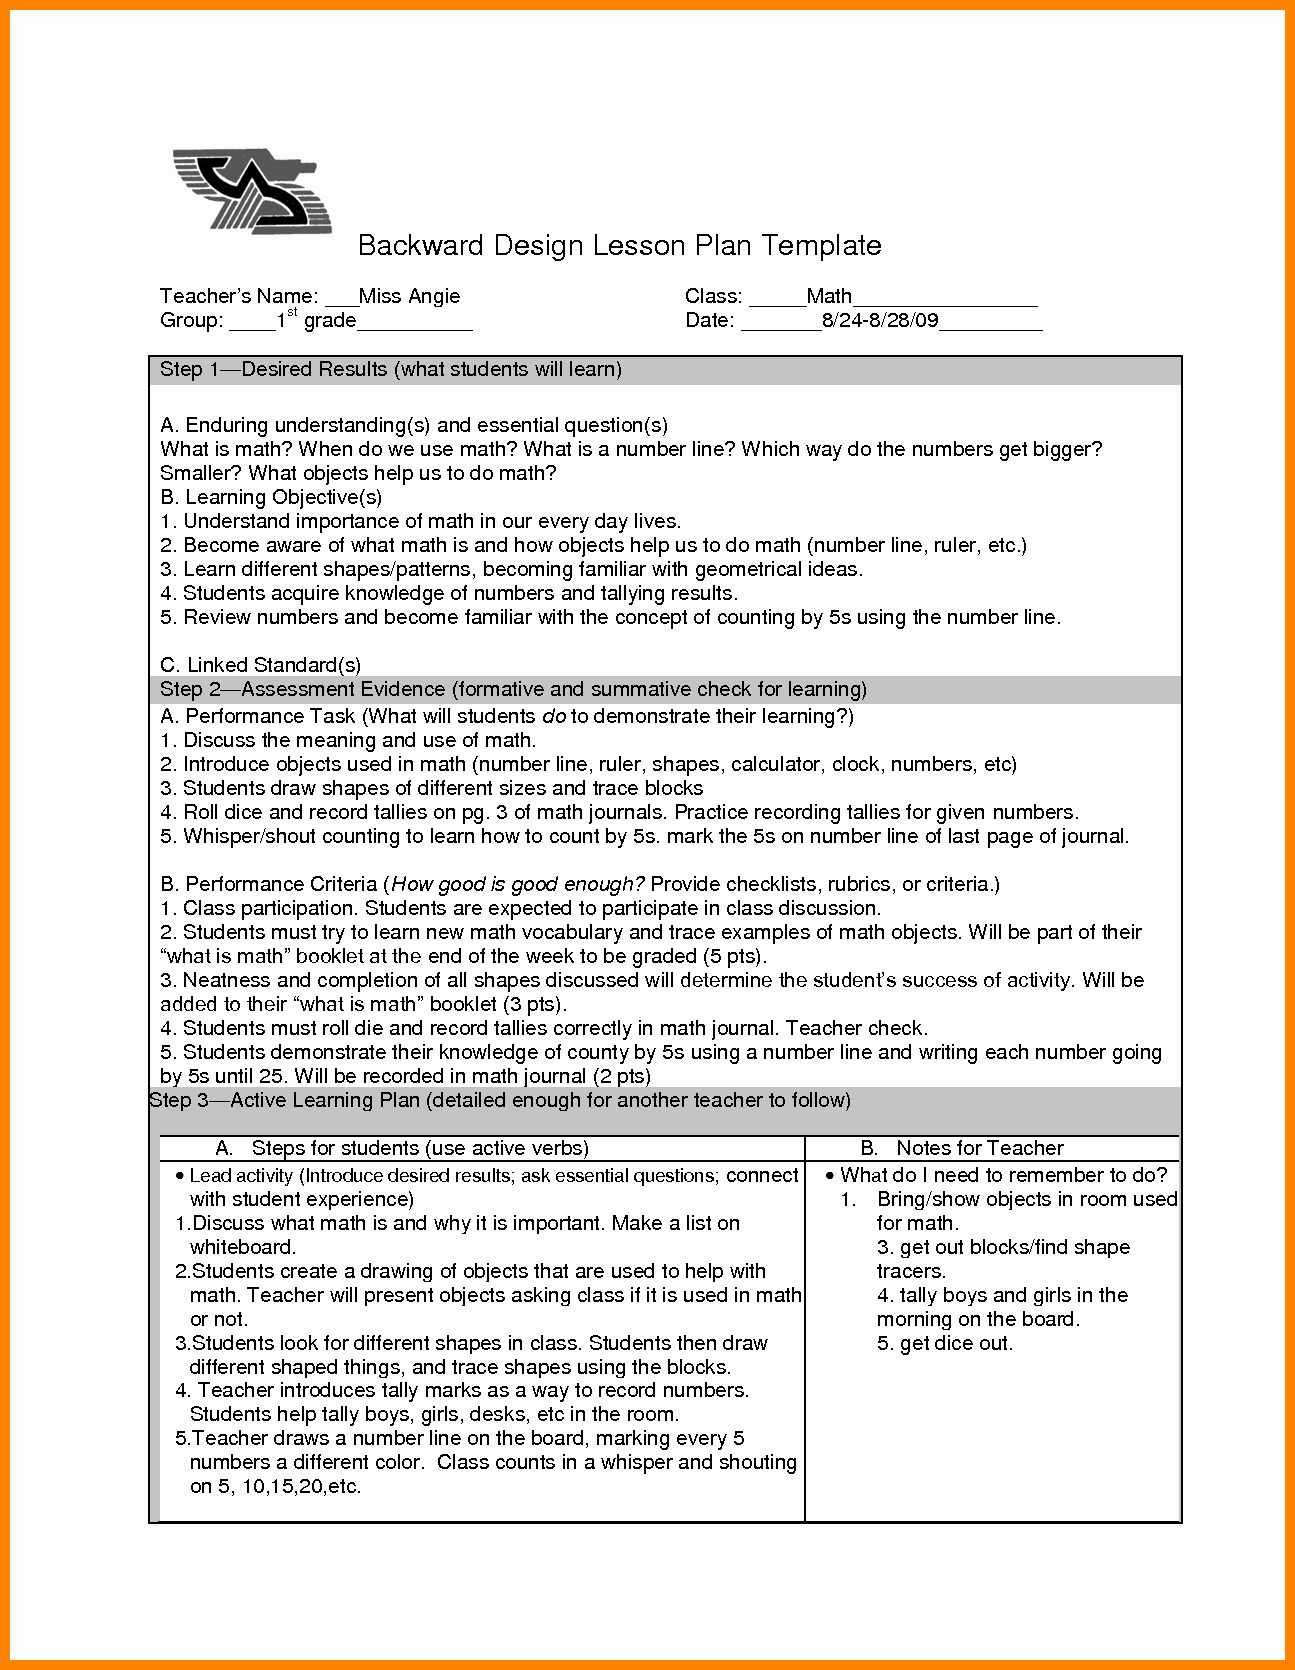 Backwards Design Lesson Plan Template Lovely Backward Design Lesson Plan Template orig